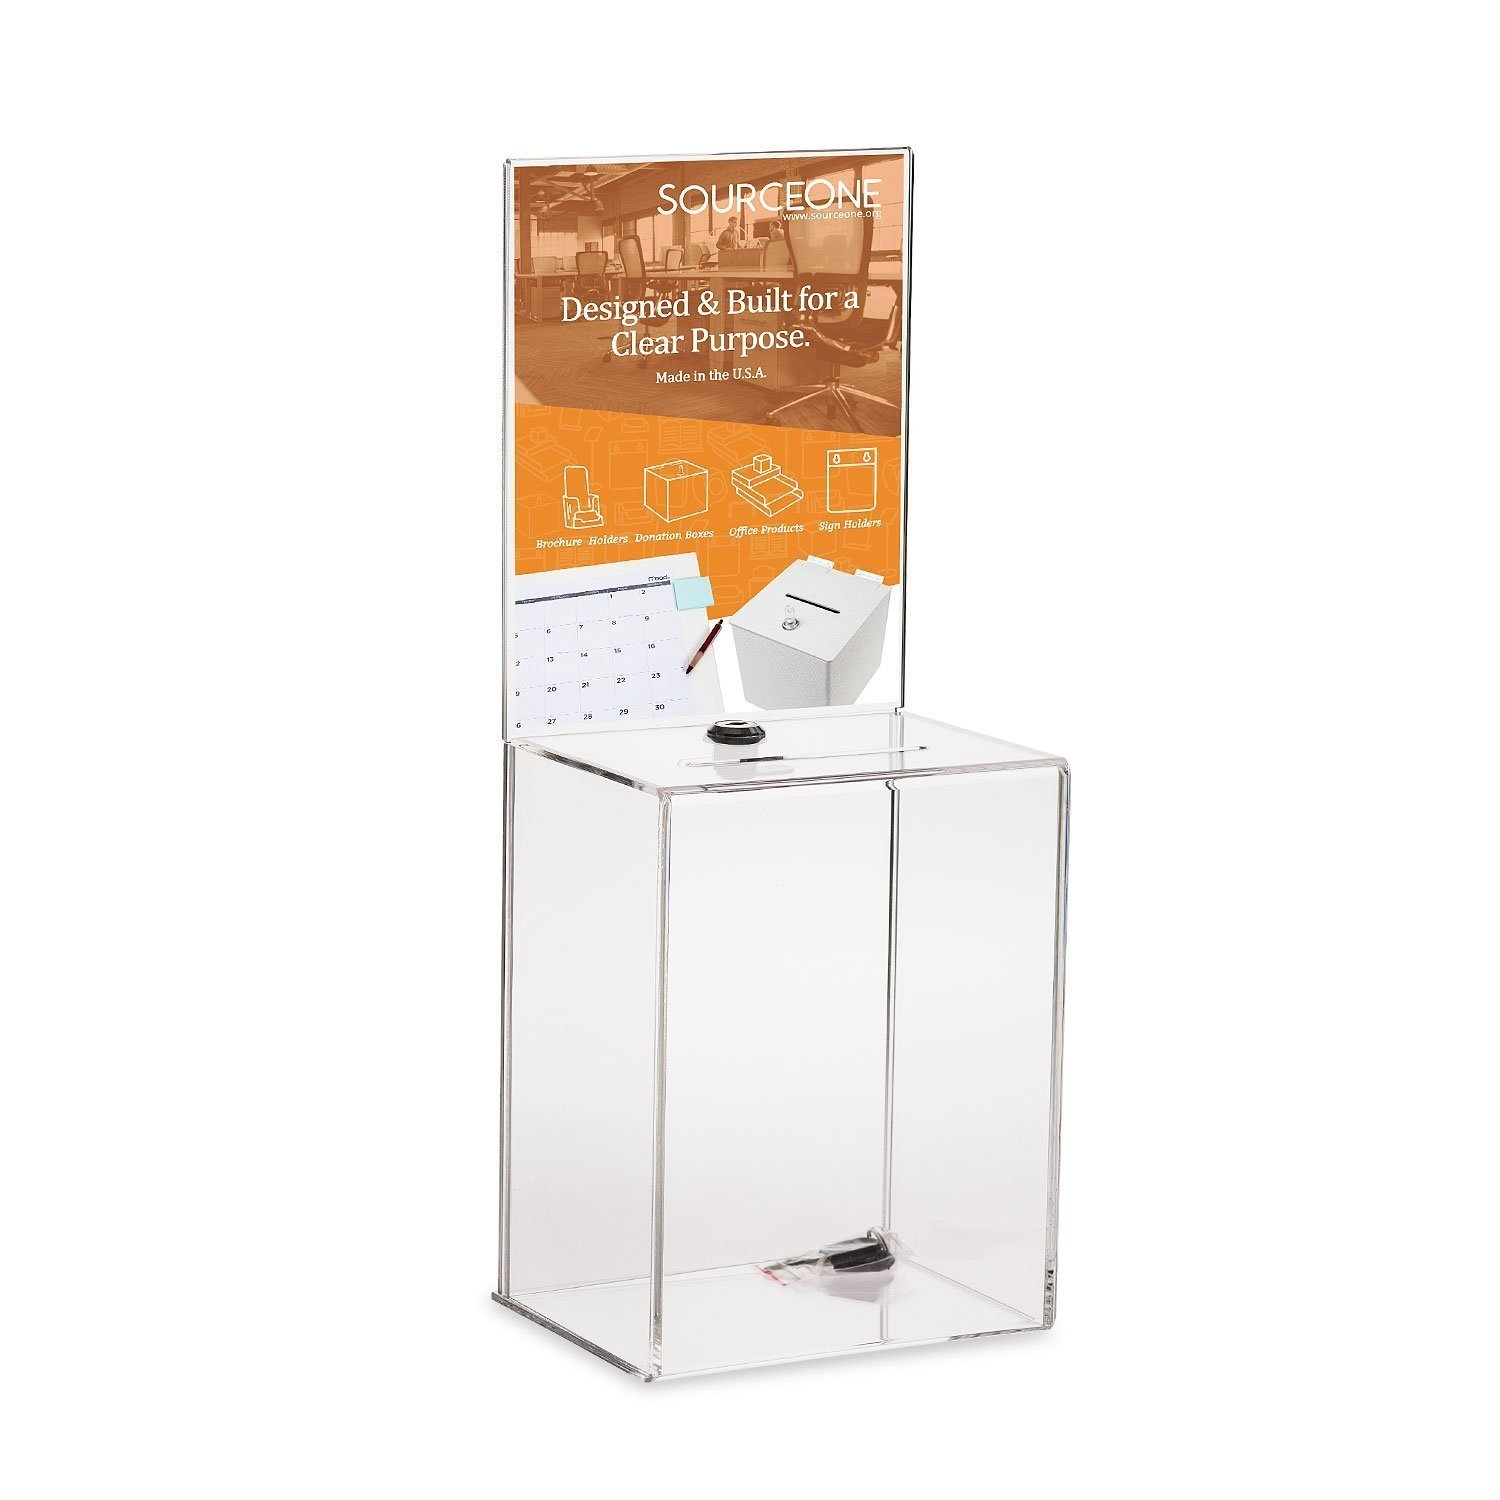 Source One - Deluxe Tall Donation Box - Ballot Box - Suggestion Box - Acrylic Box - Tip Box- With Large Display Area (8 Pack - Case)